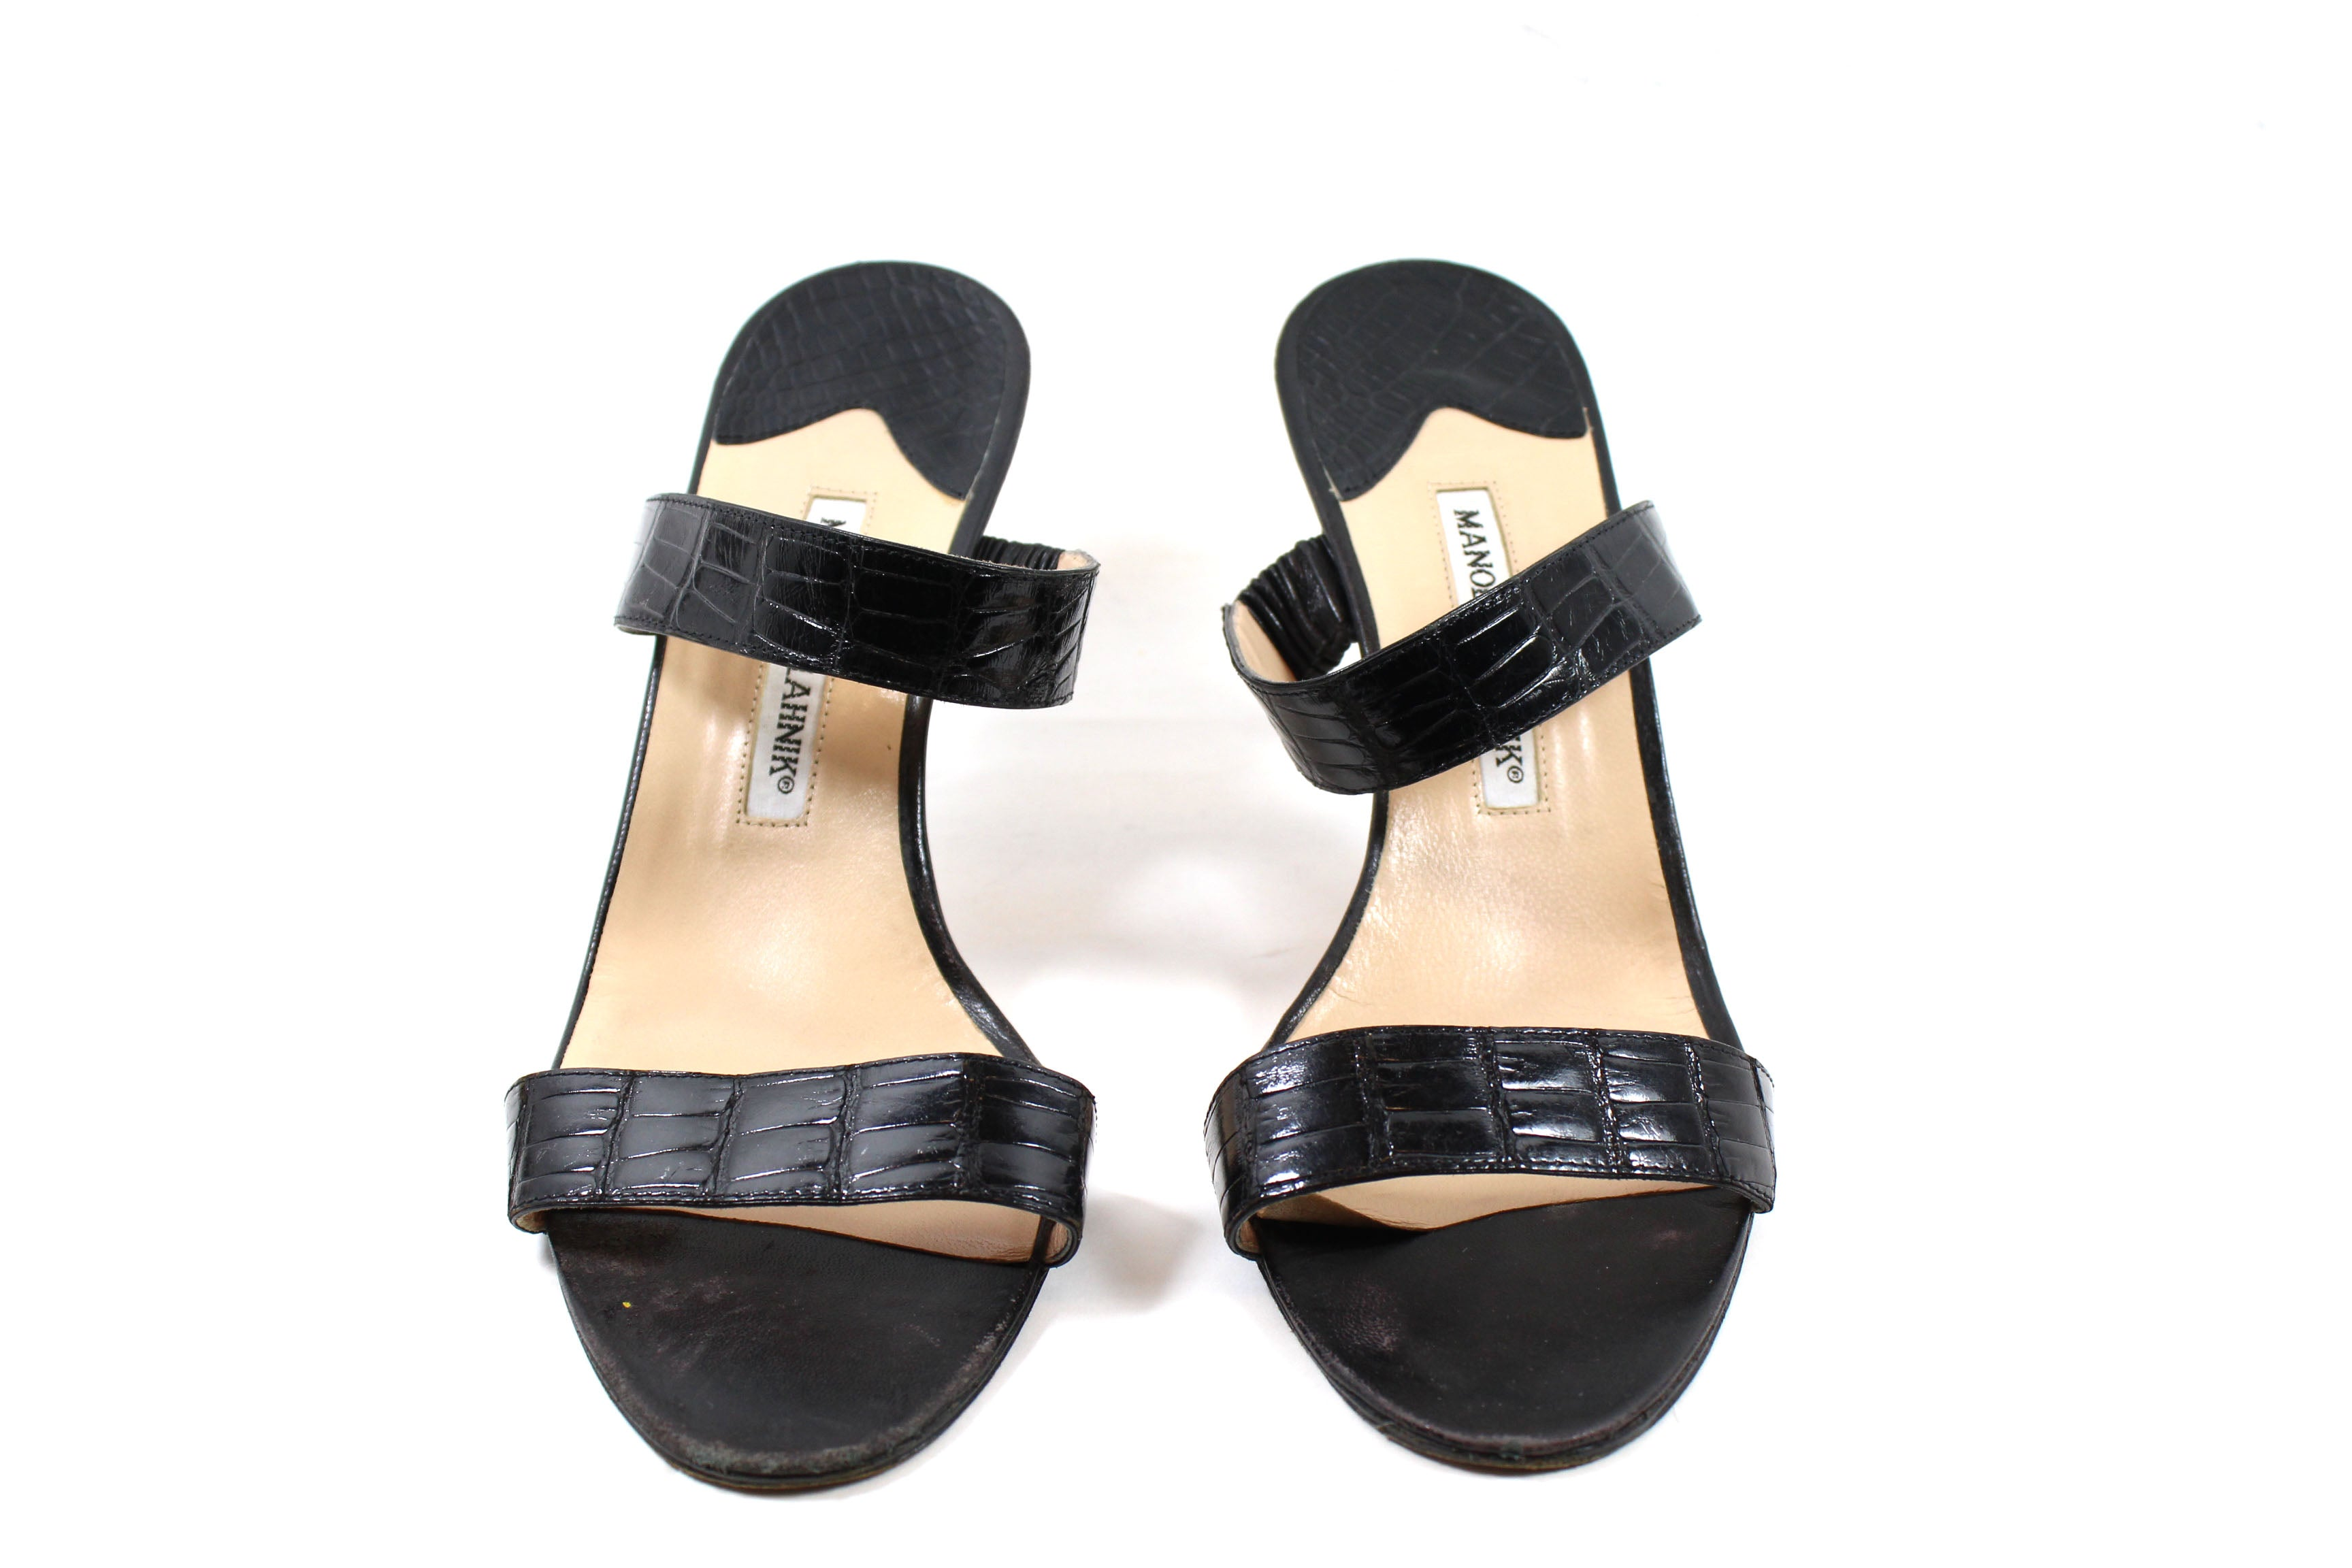 Manolo Blahnik Black Crocodile Dual Strap Sandals (Size 40.5)